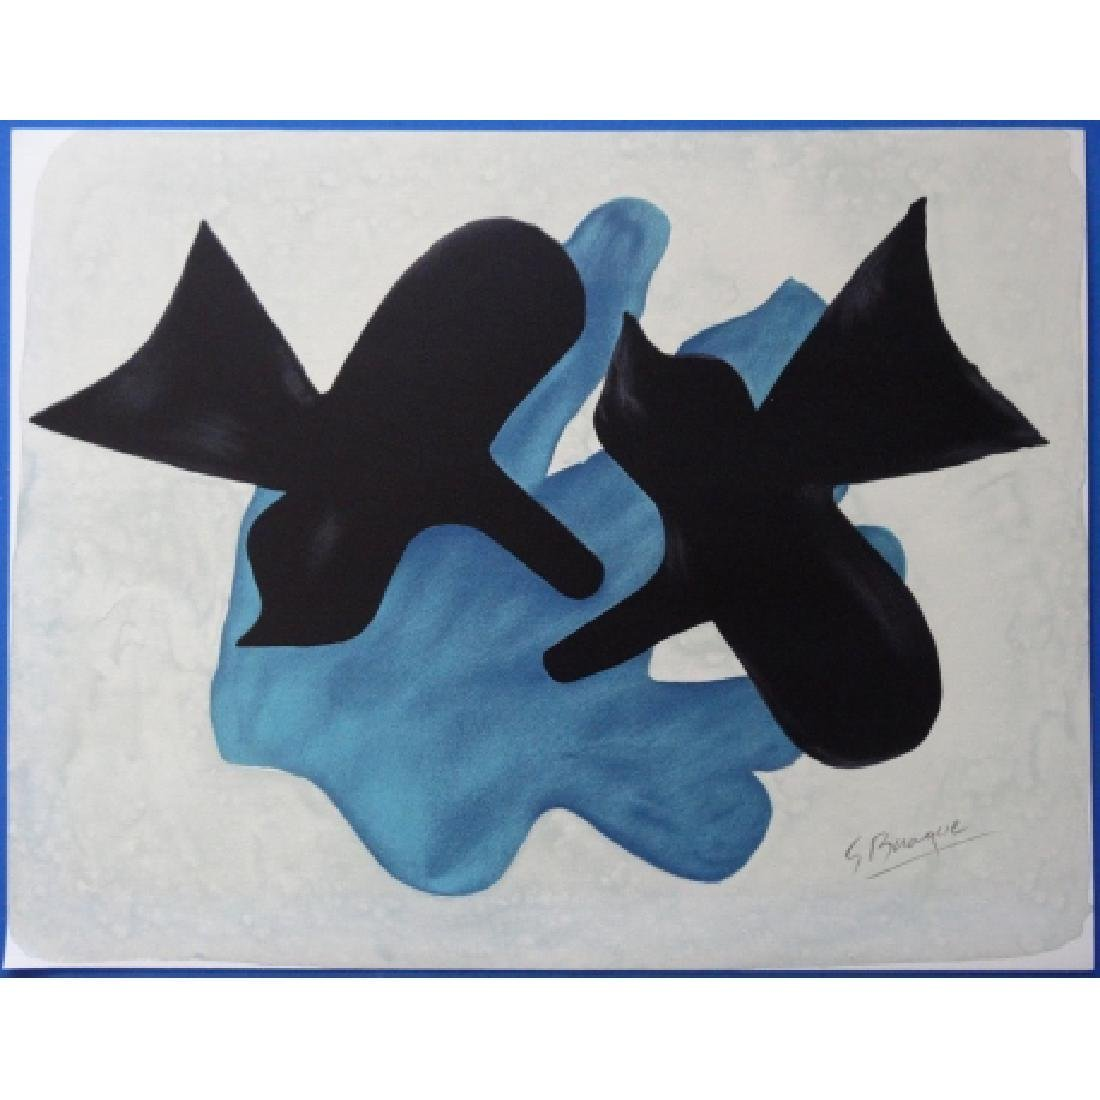 Georges BRAQUE Lithograph Two birds